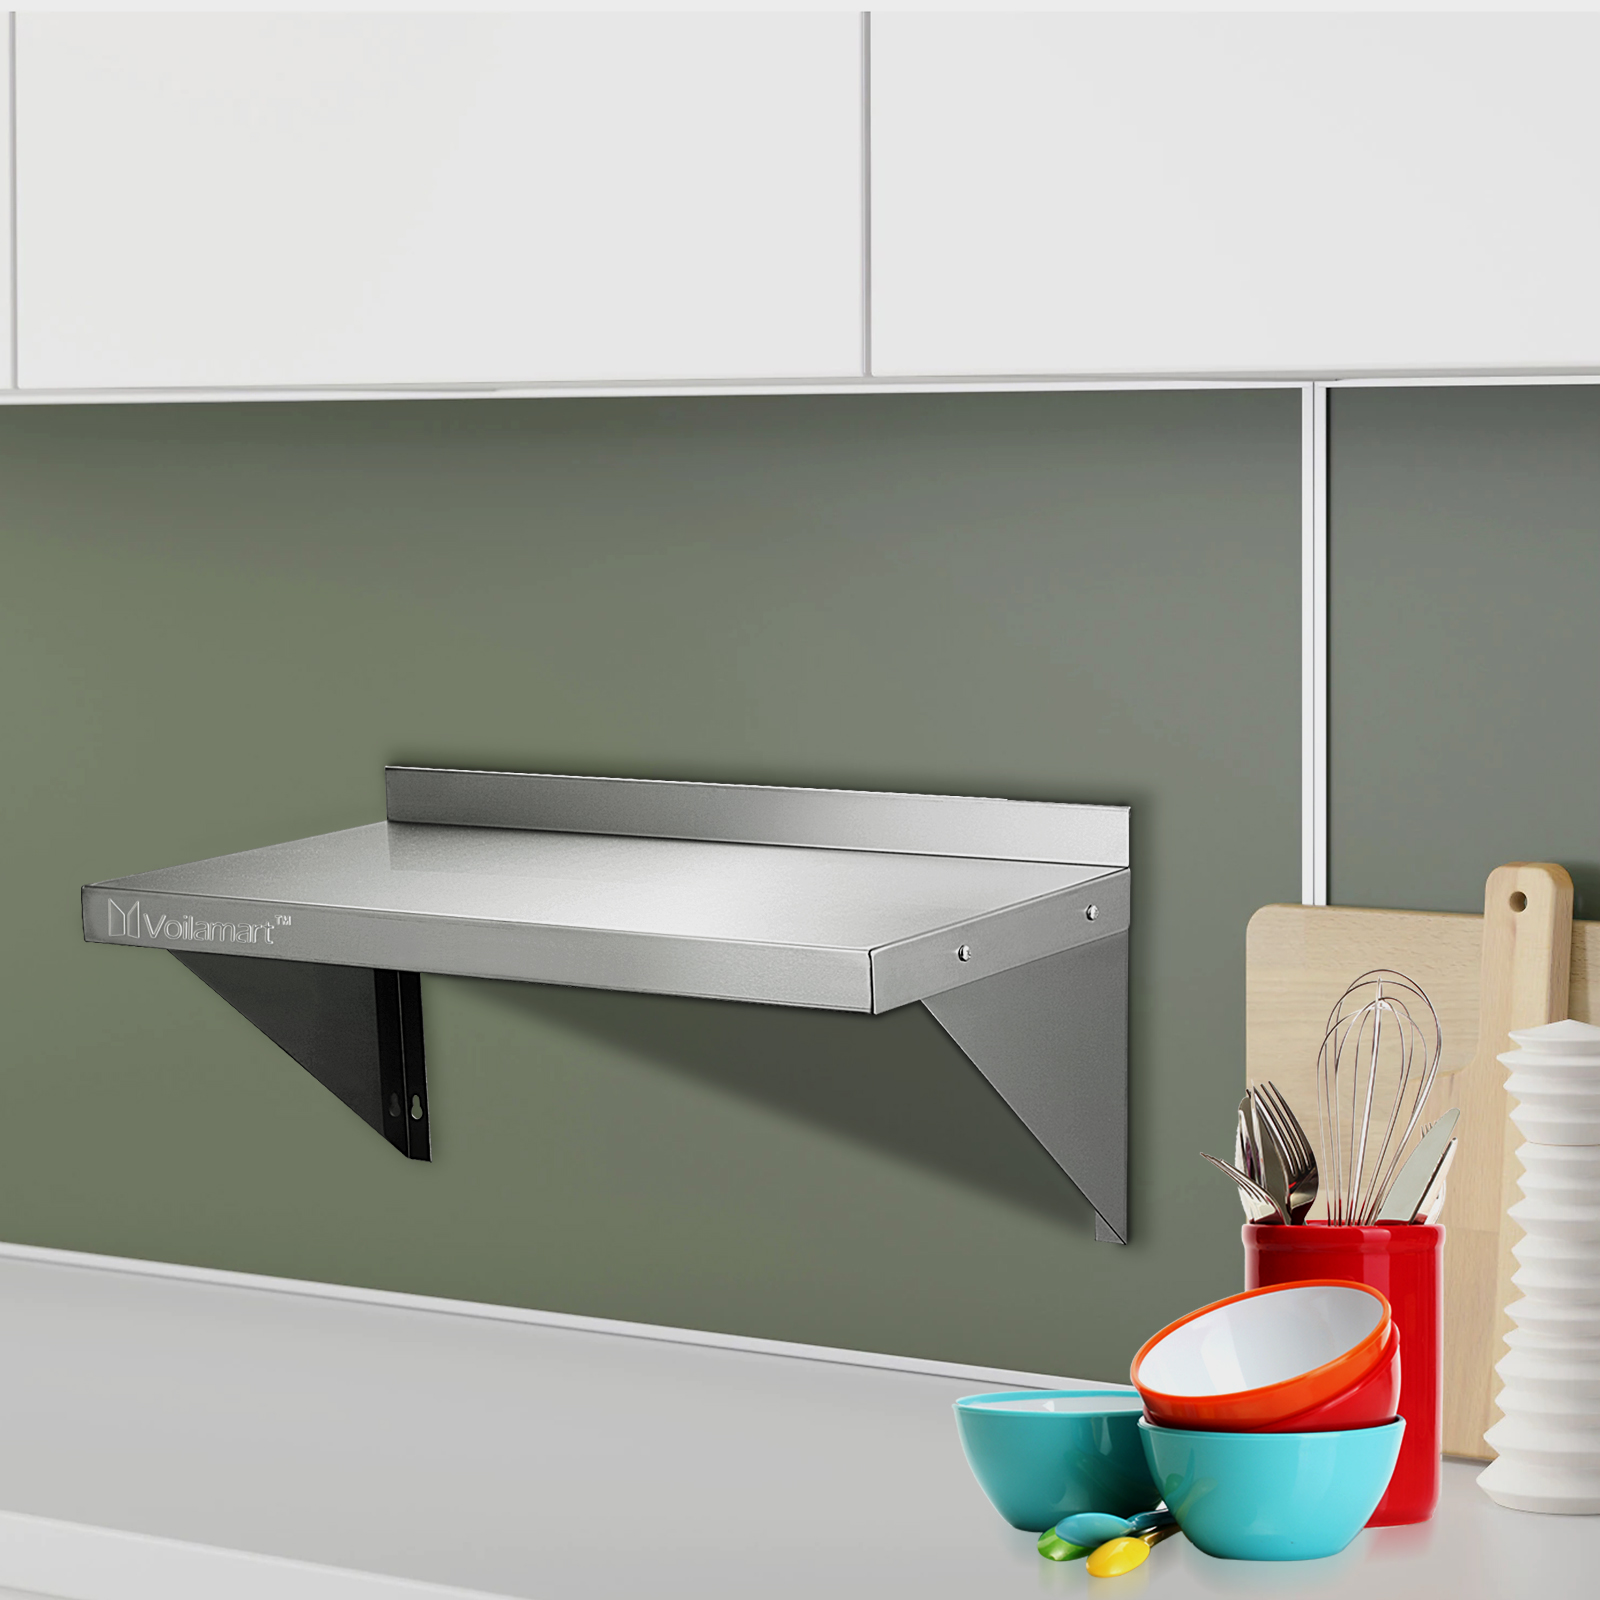 600mm Commercial Stainless Steel Wall Shelf 24 Quot X 12